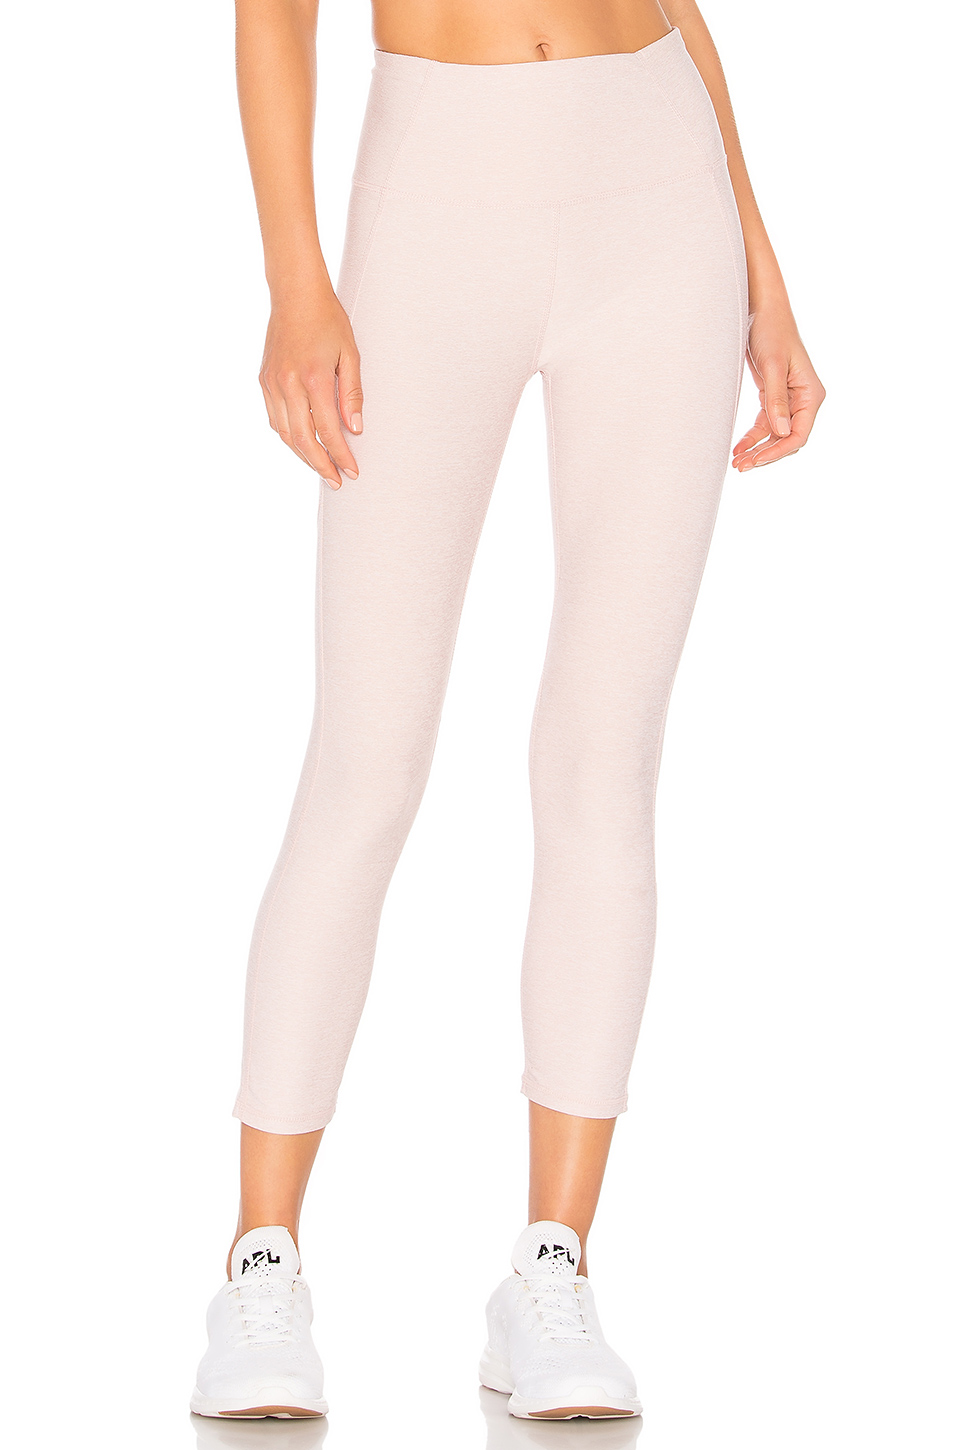 Varley Everett Legging $77